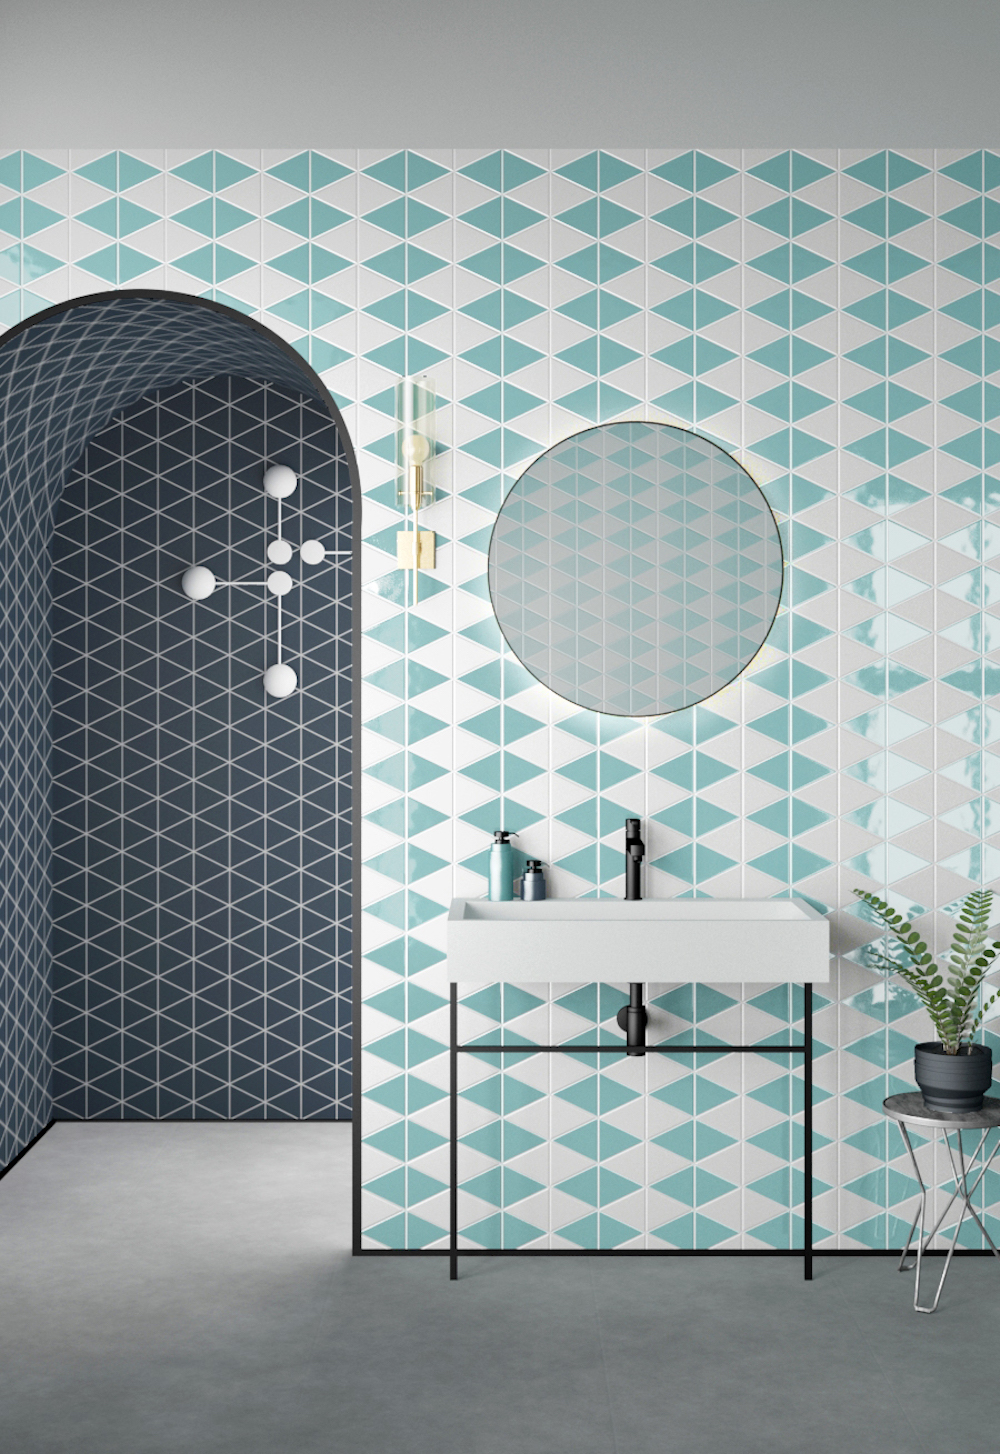 Image caption: Trivial by STD Architectural Tiles